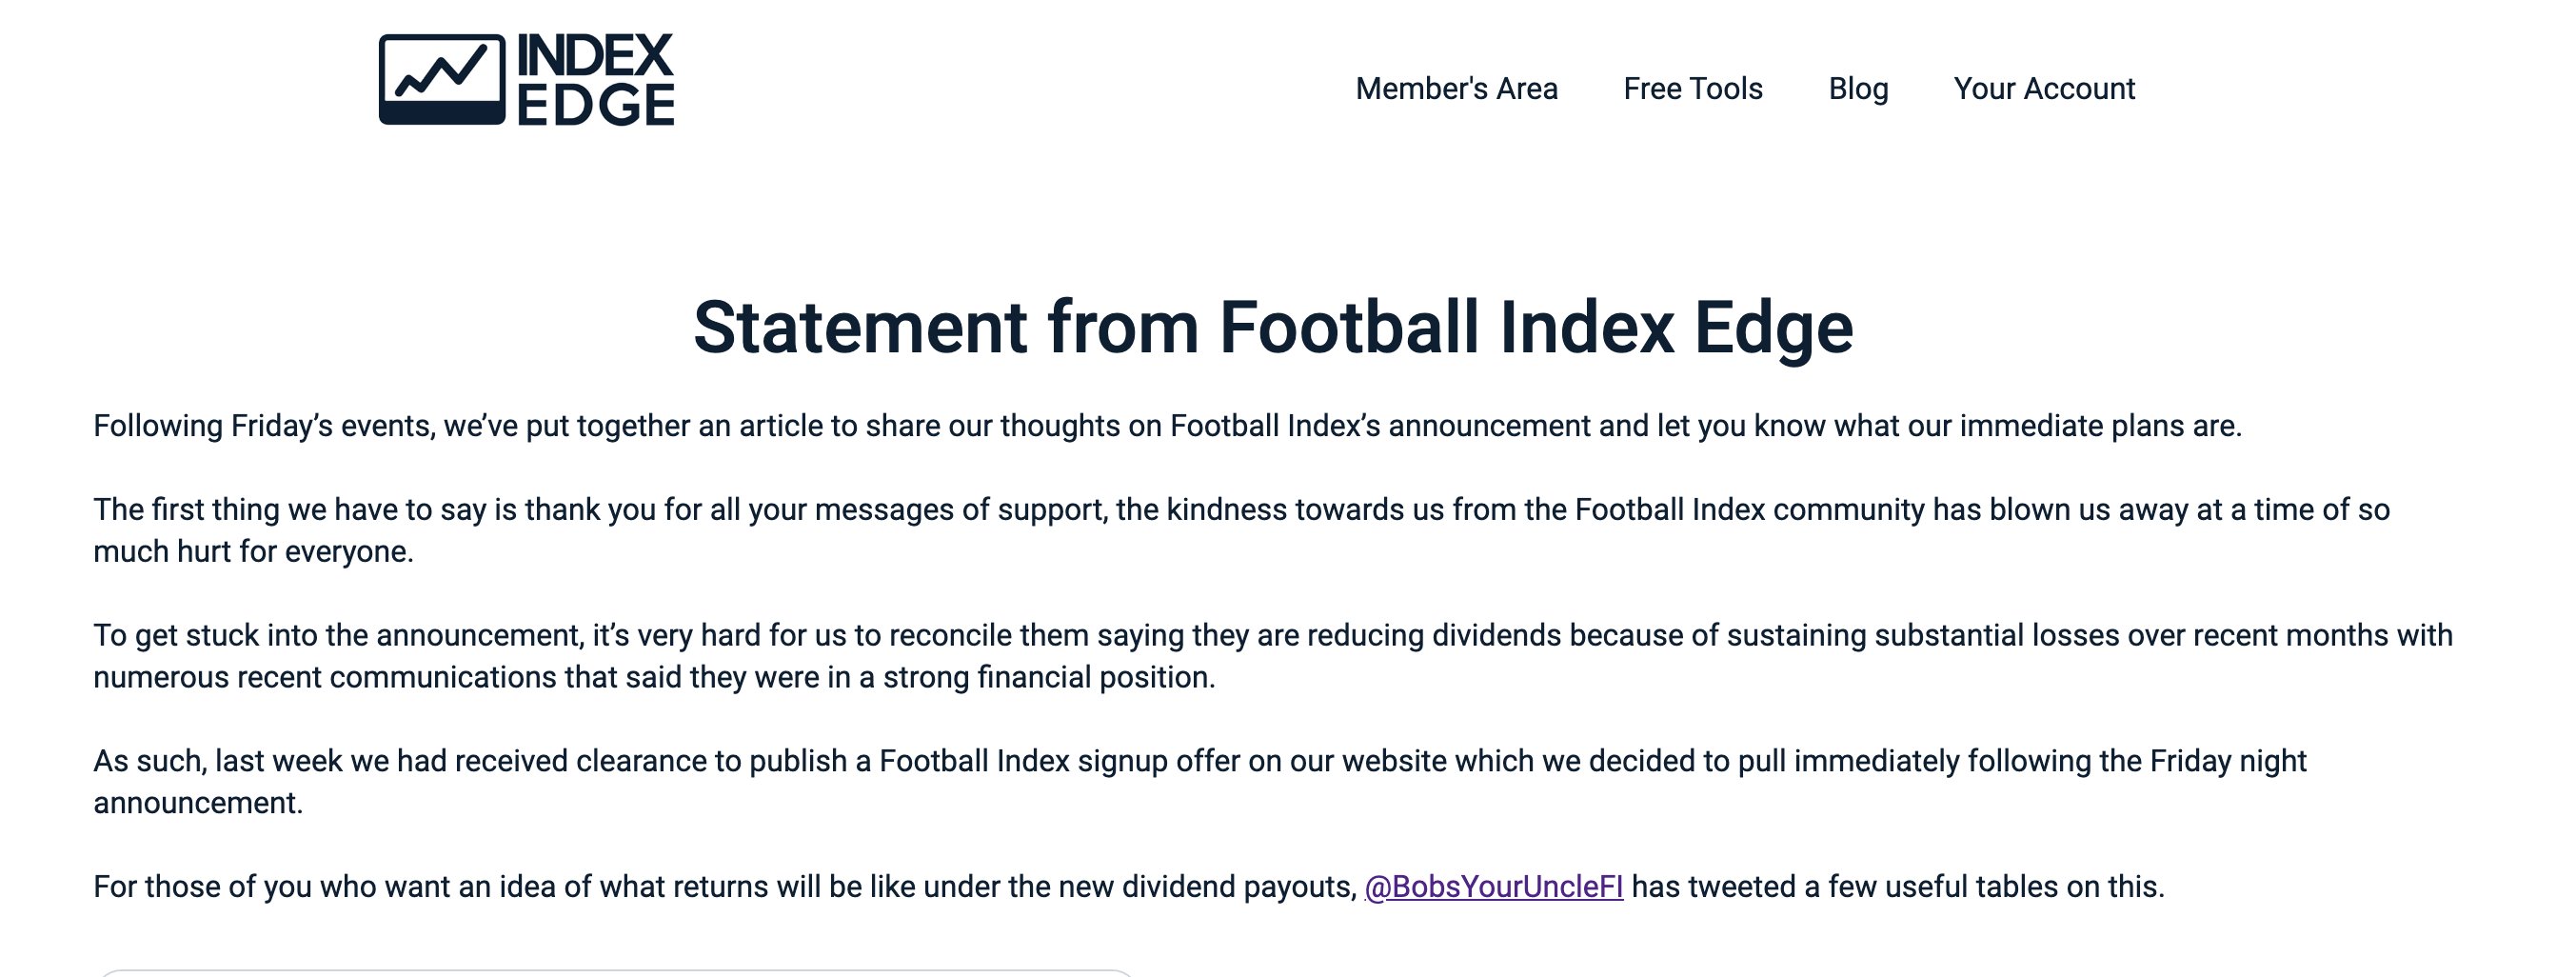 Statement from Football Index Edge